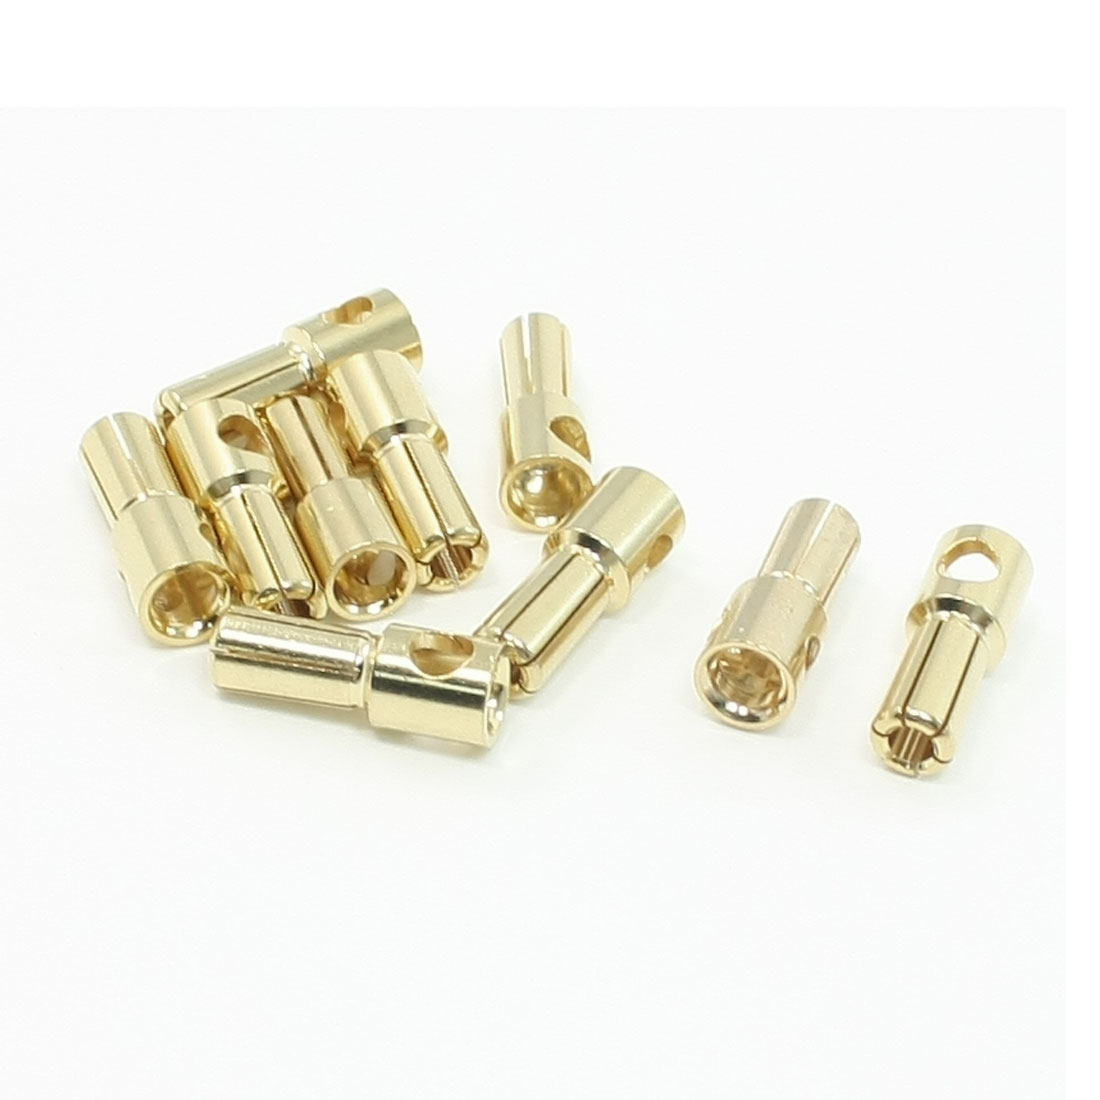 Gold Tone Metal RC Banana Cone Plug Connector Male 5.5mm 10 Pcs